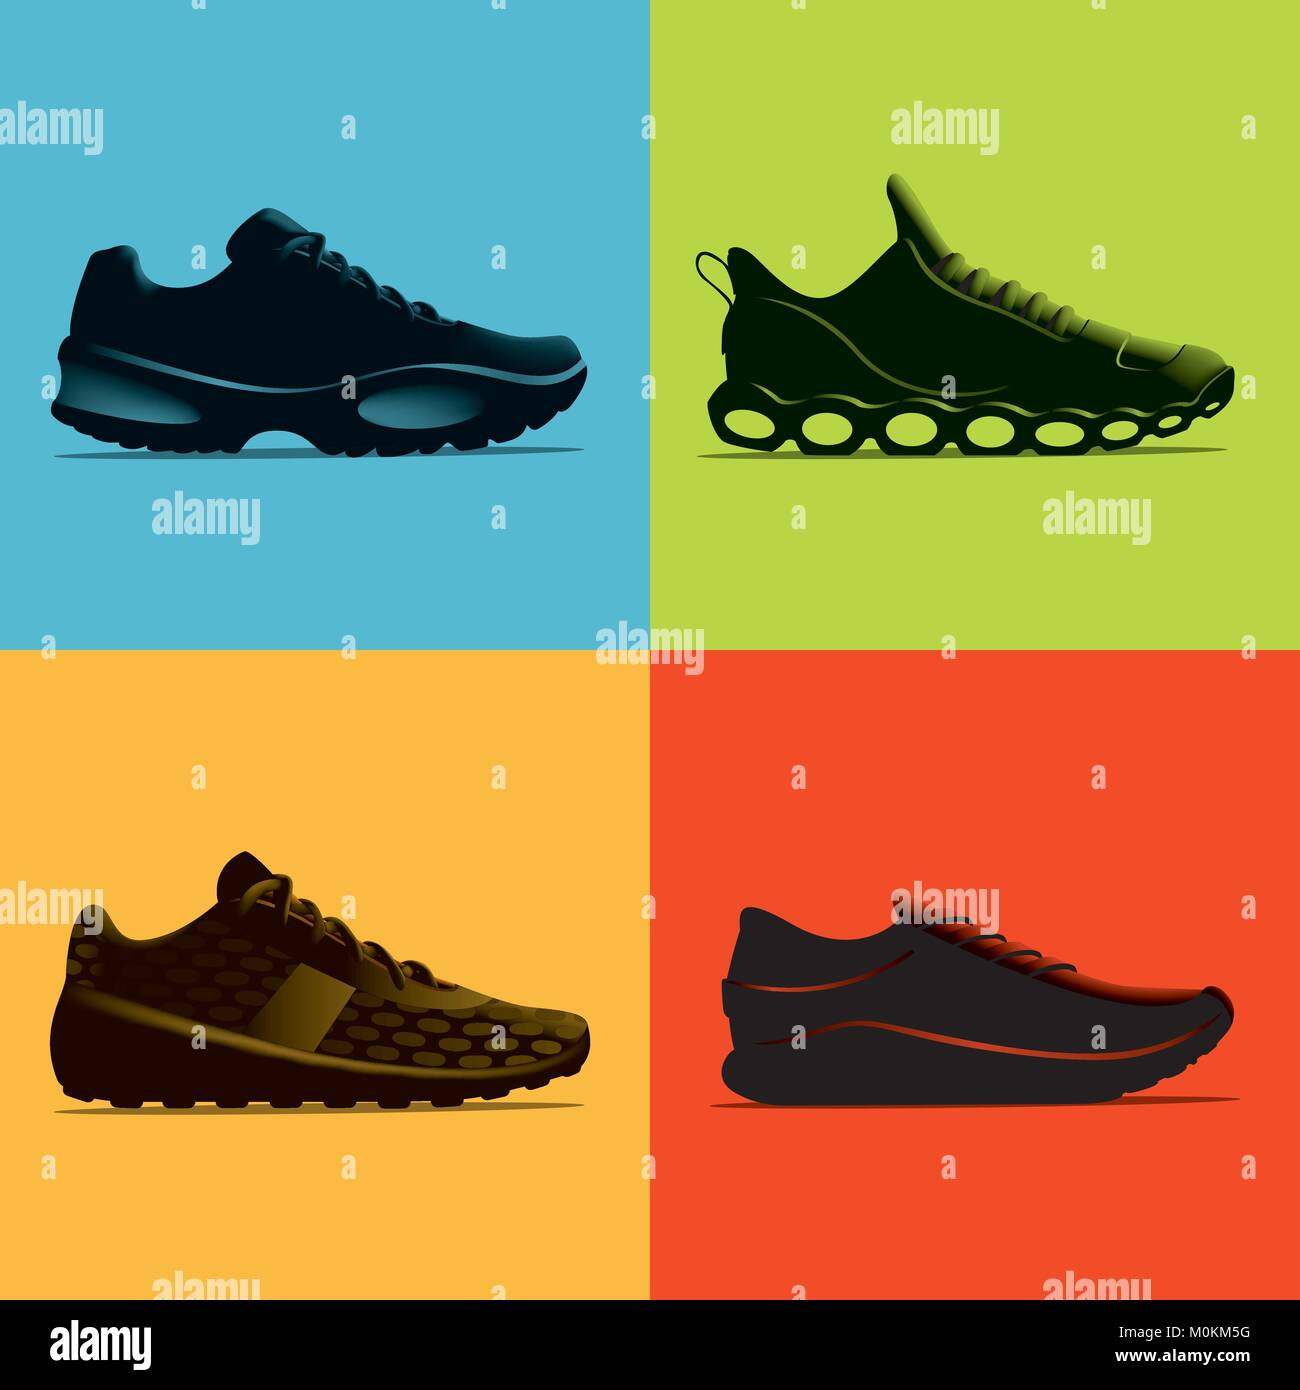 A set of 4 athletic shoes rendered in near silhouette against coloured backgrounds. This is a scalable and editable - Stock Vector